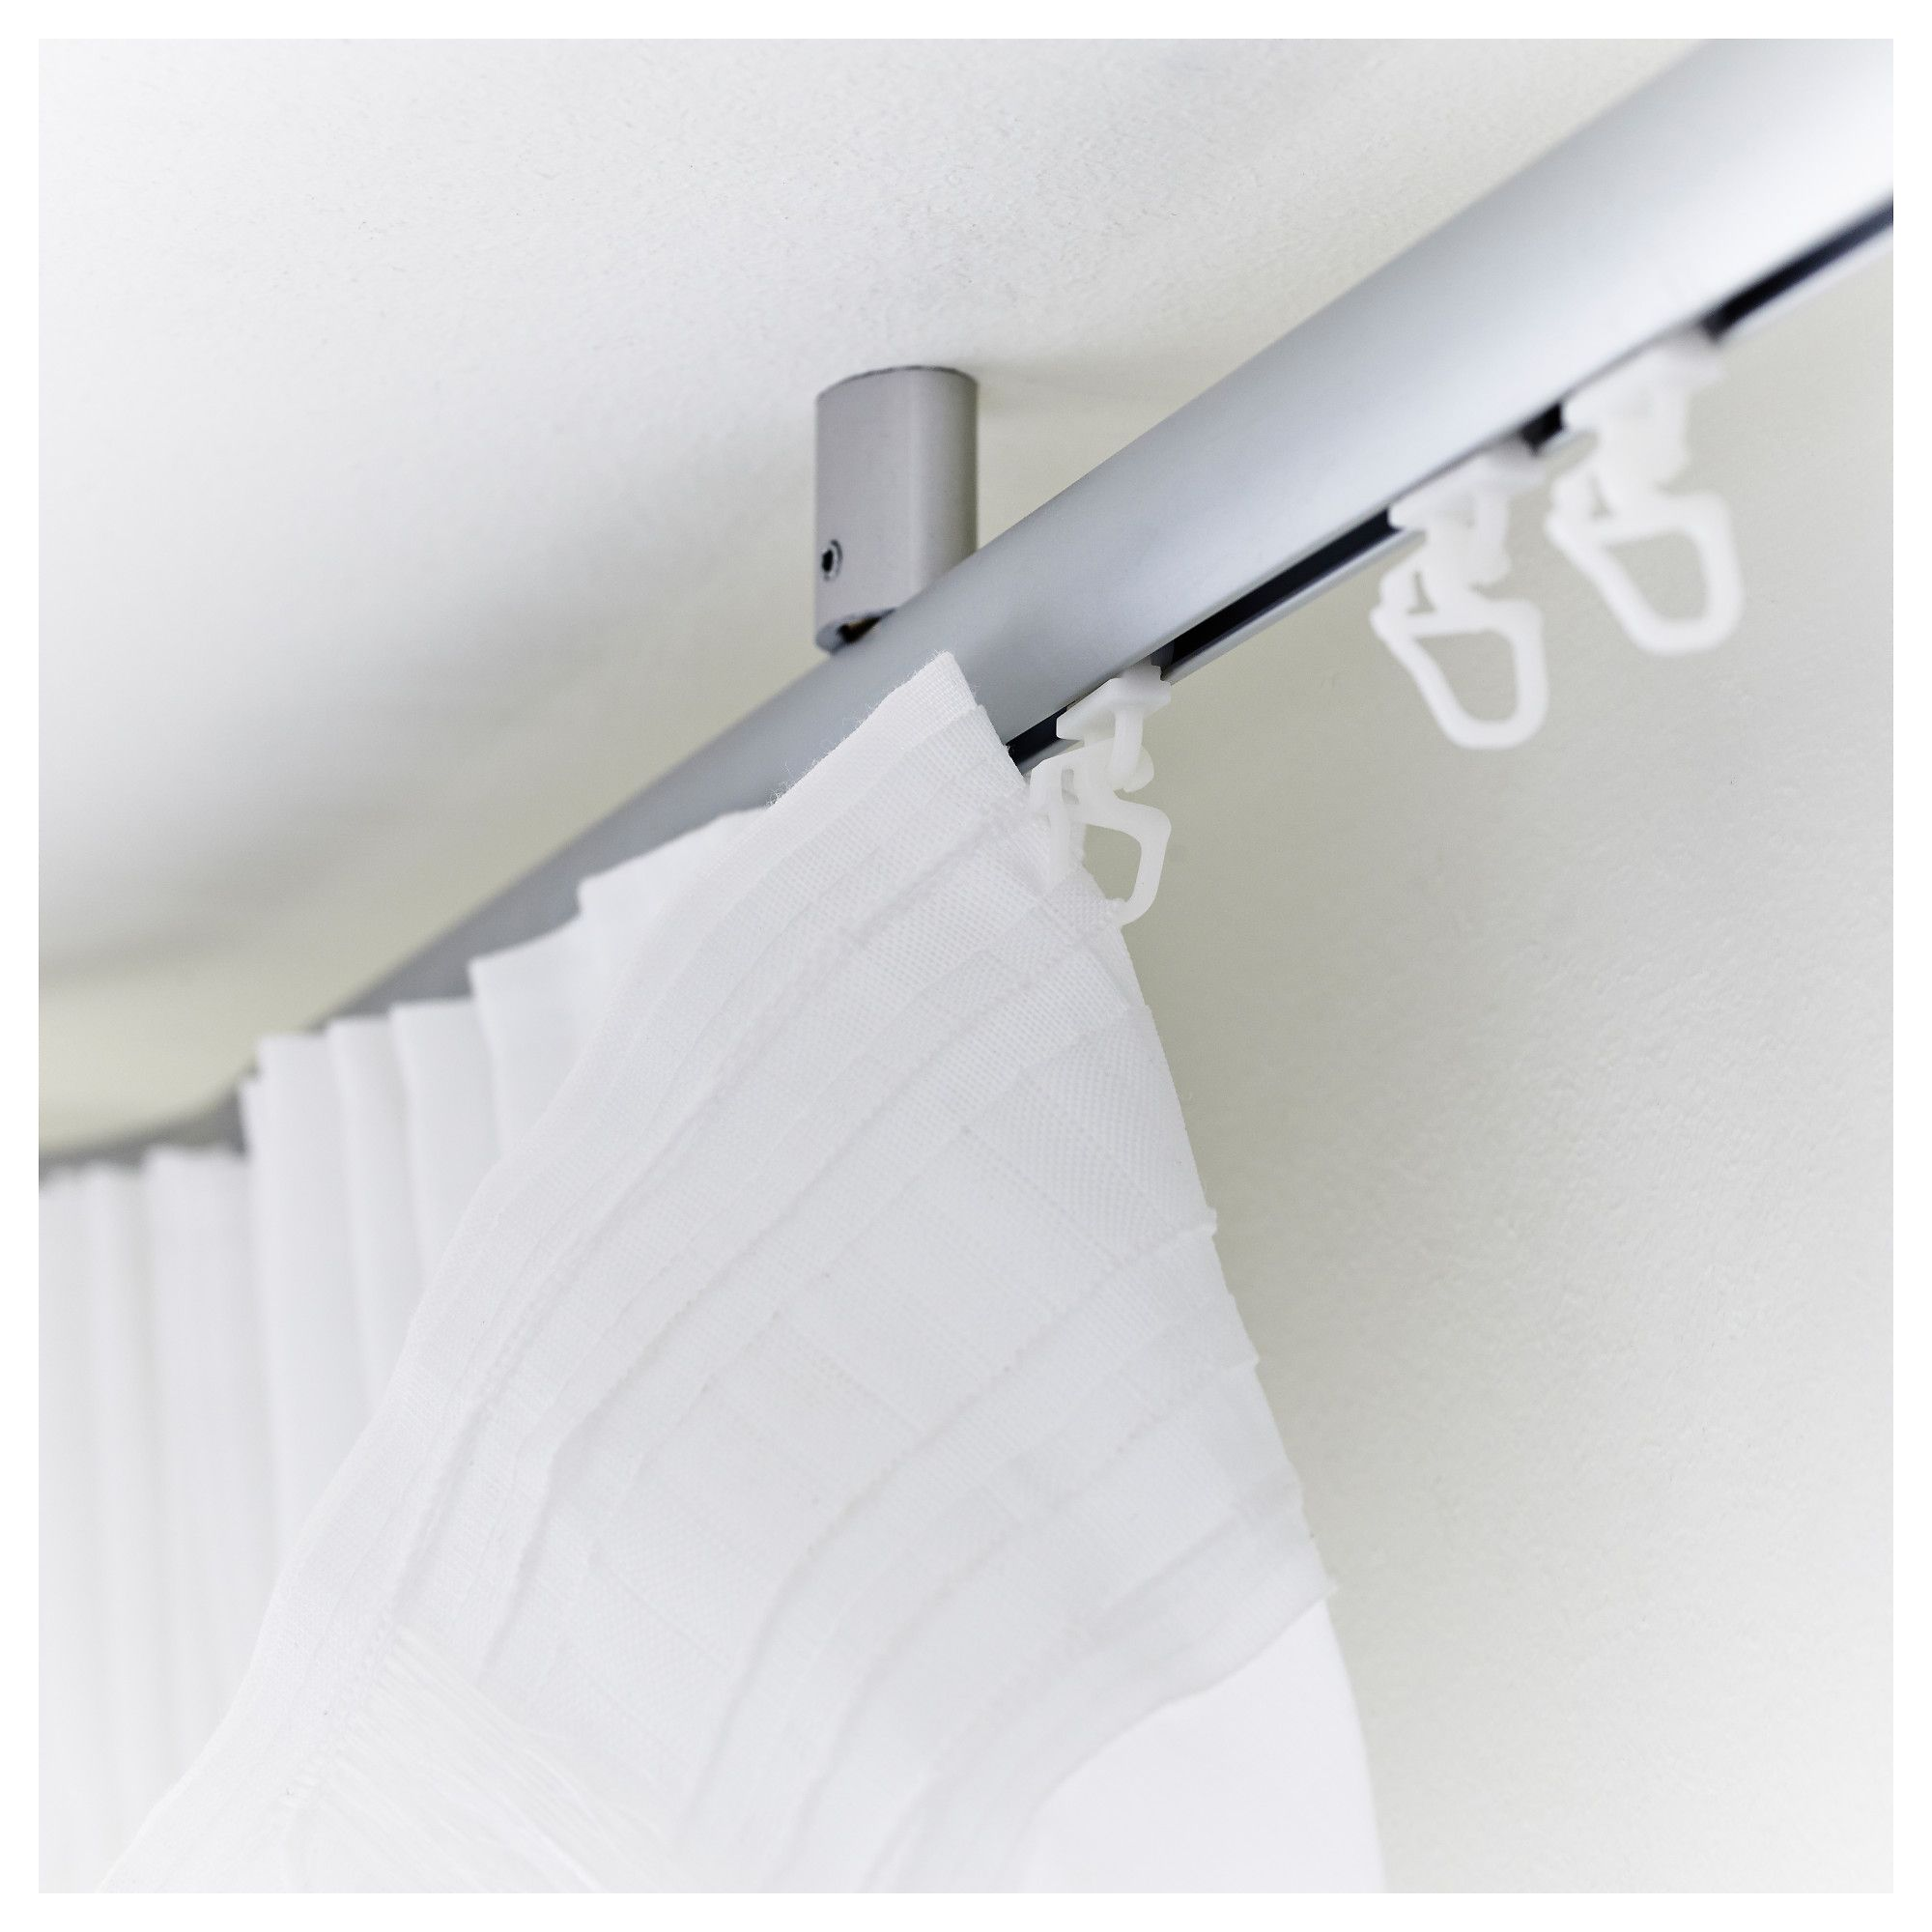 Ikea Kvartal Glider And Hook For Easy Hanging Of